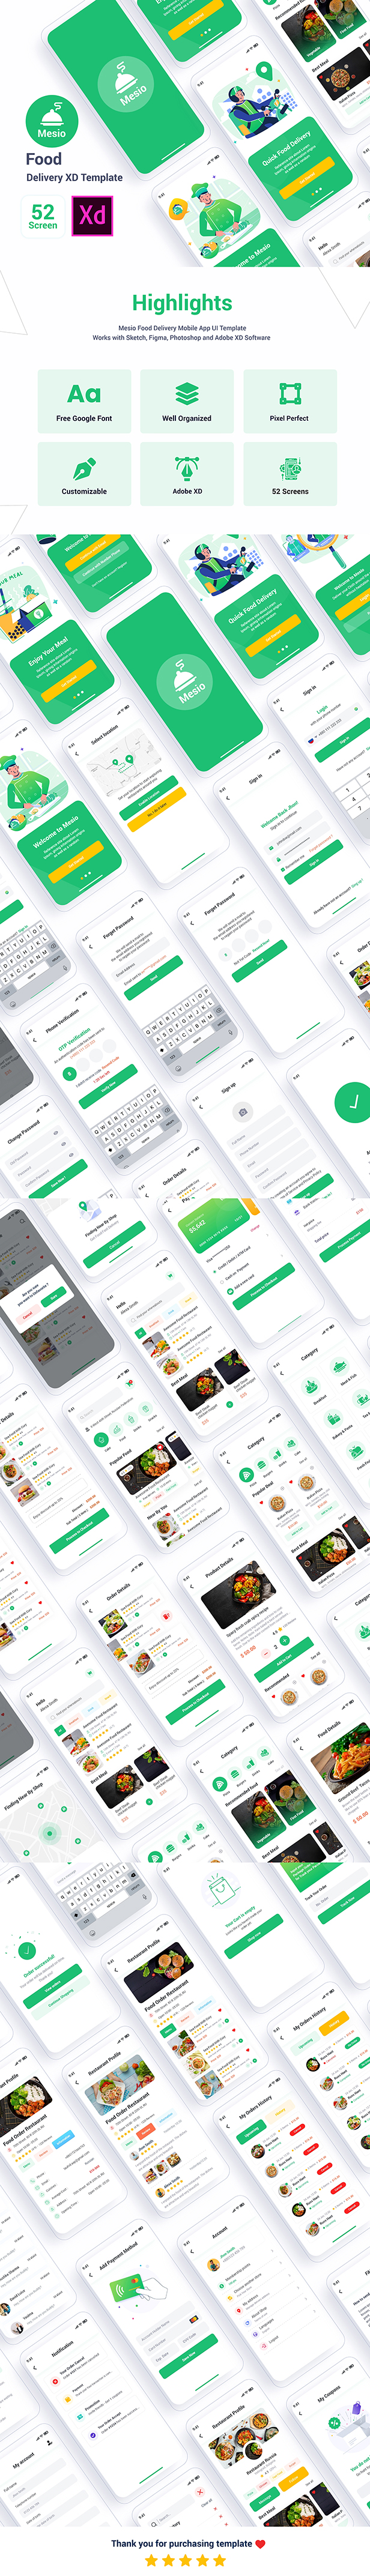 Mesio - Food Delivery Adobe XD Template - 1